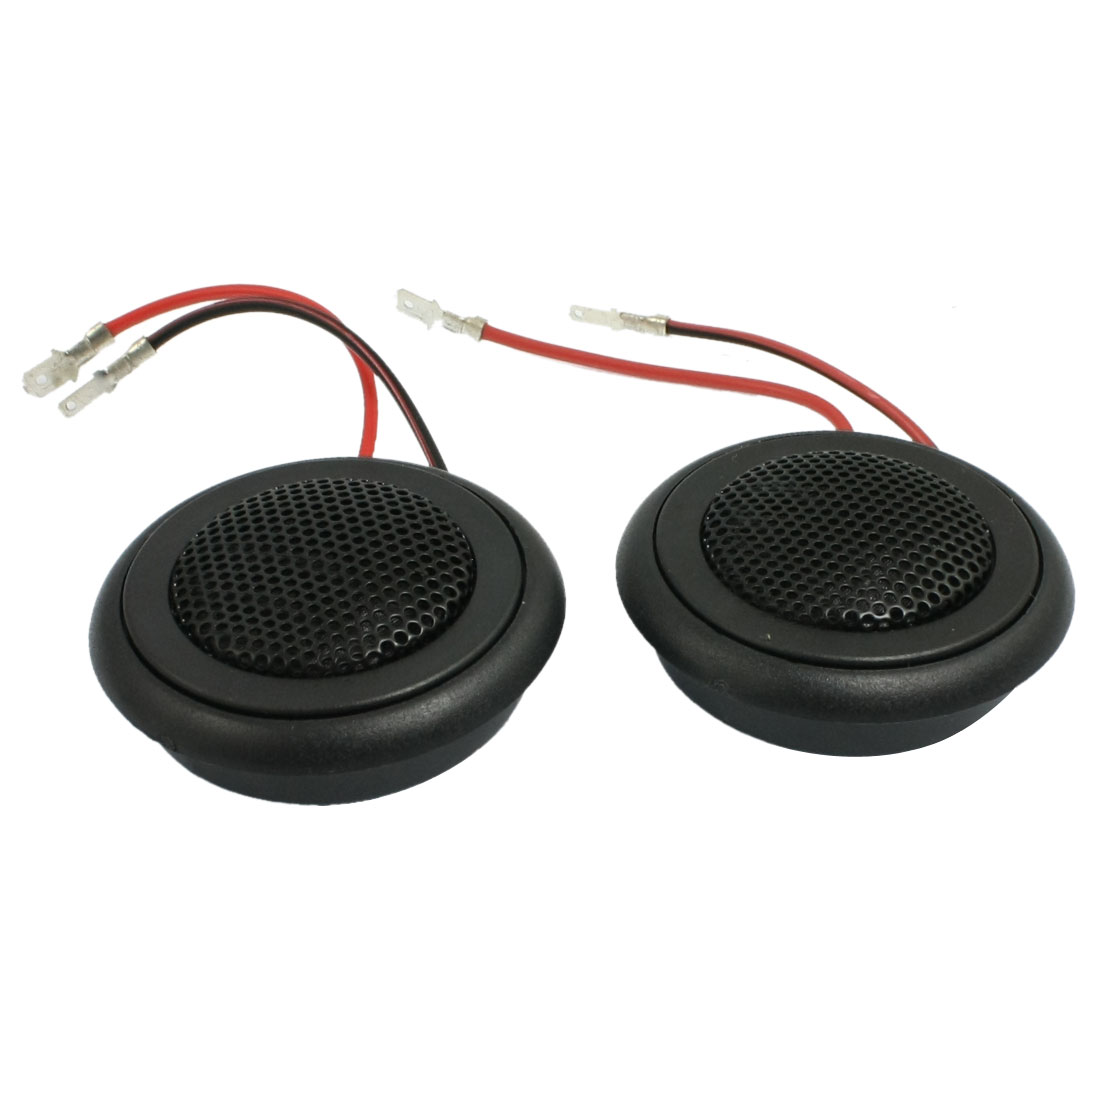 "2 Pcs 2.3"" Metal Loud Speaker Dome Tweeter 150 Watt for Car Audio System"